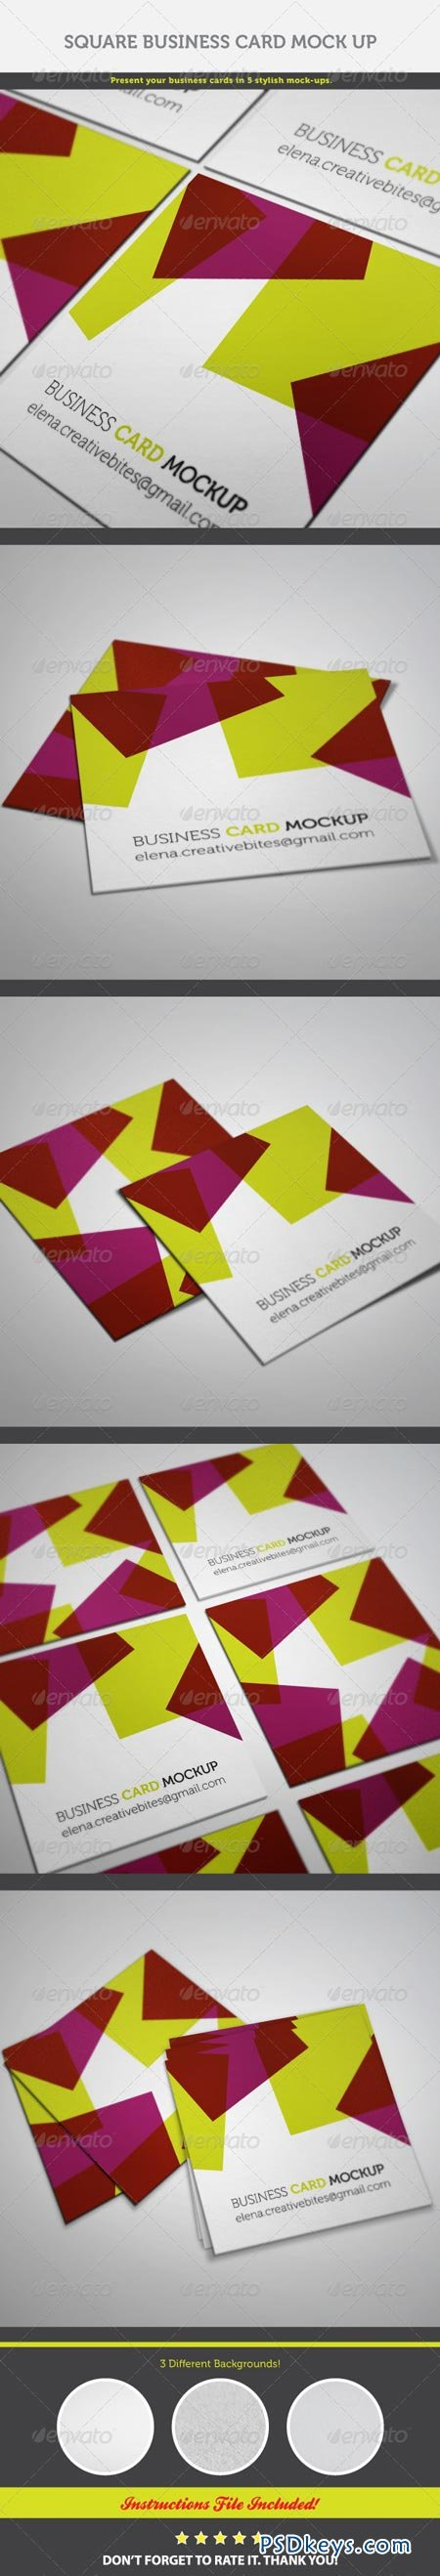 Square Business Card Mock-up 6924924